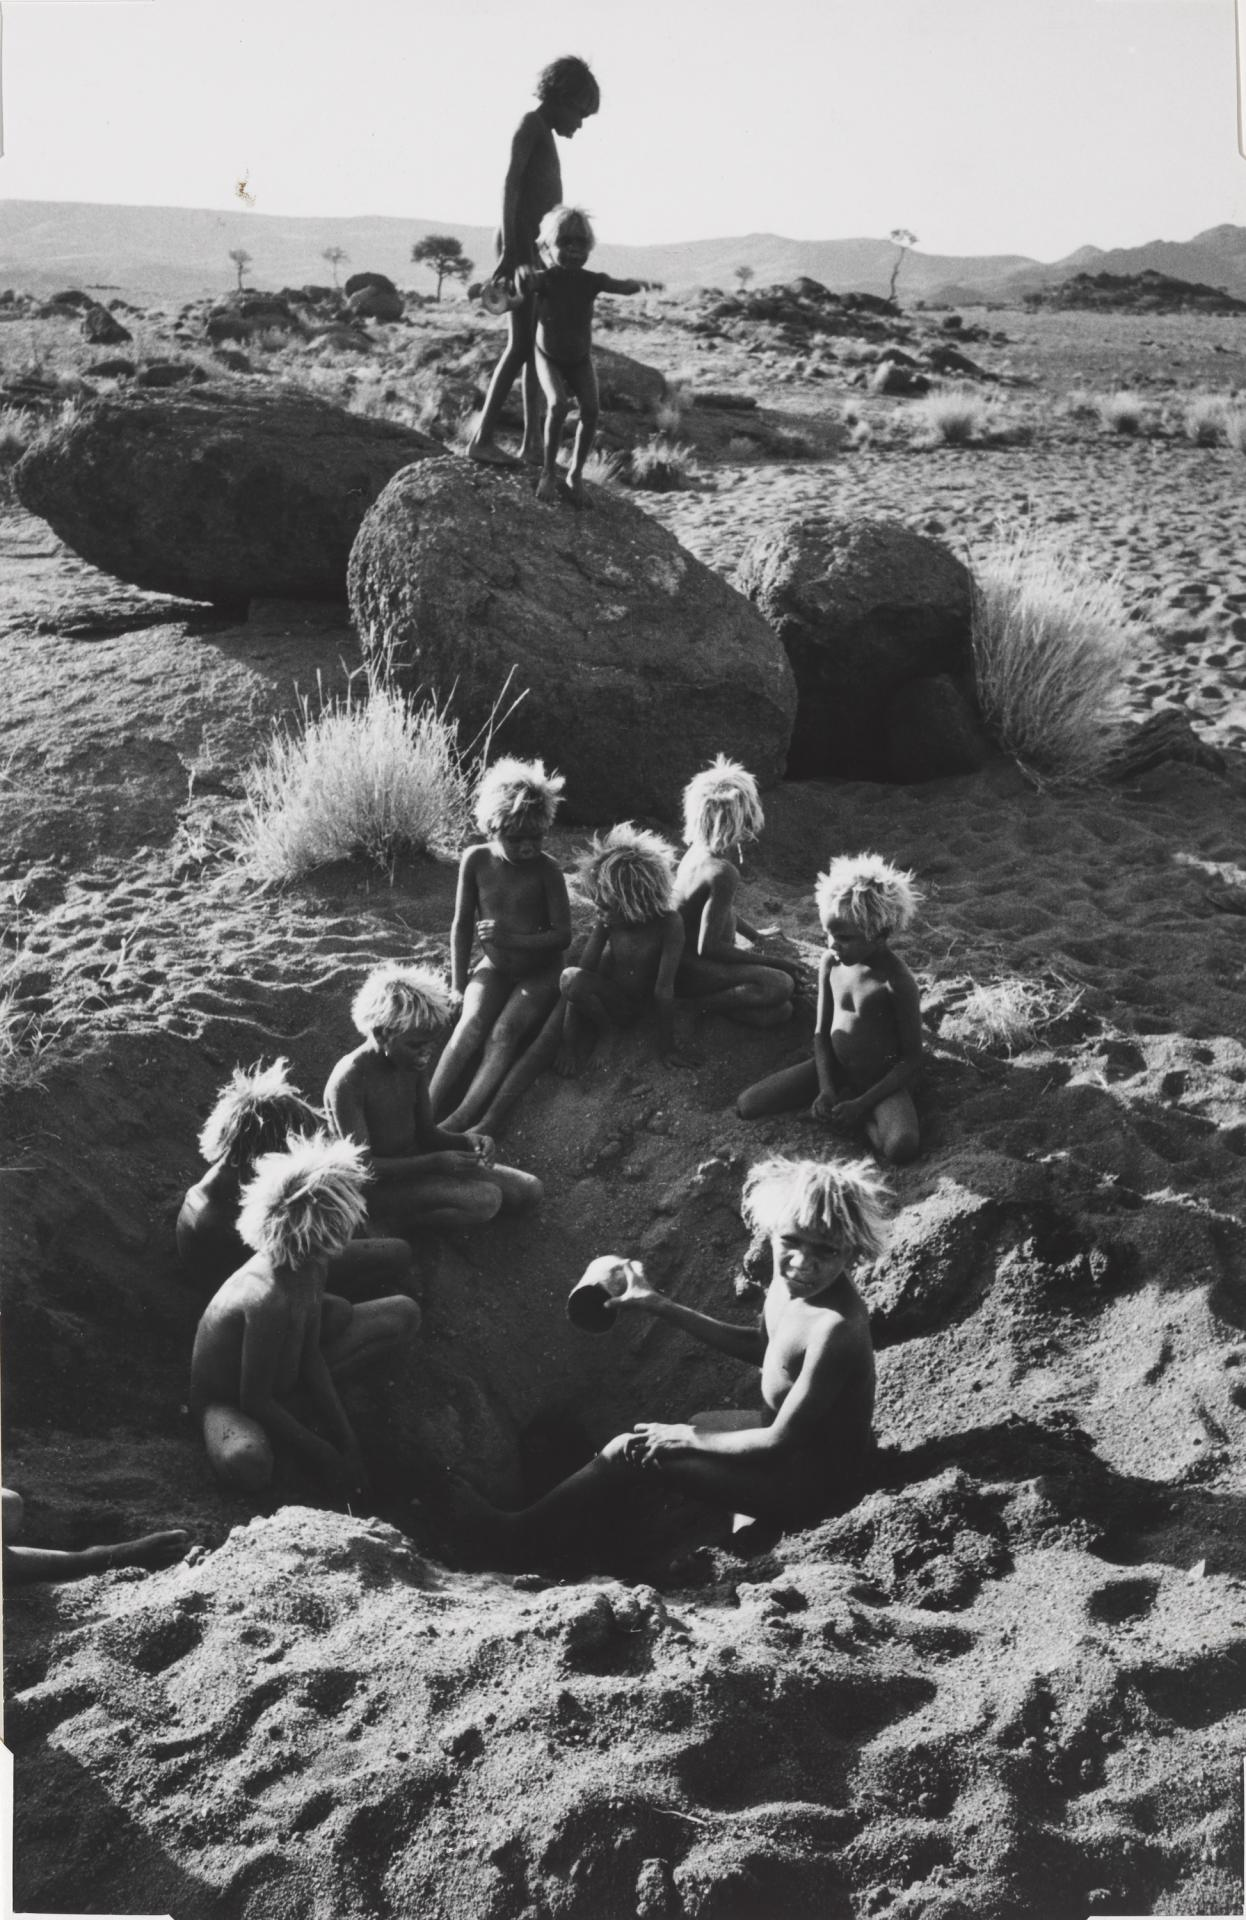 Aboriginal children digging for water